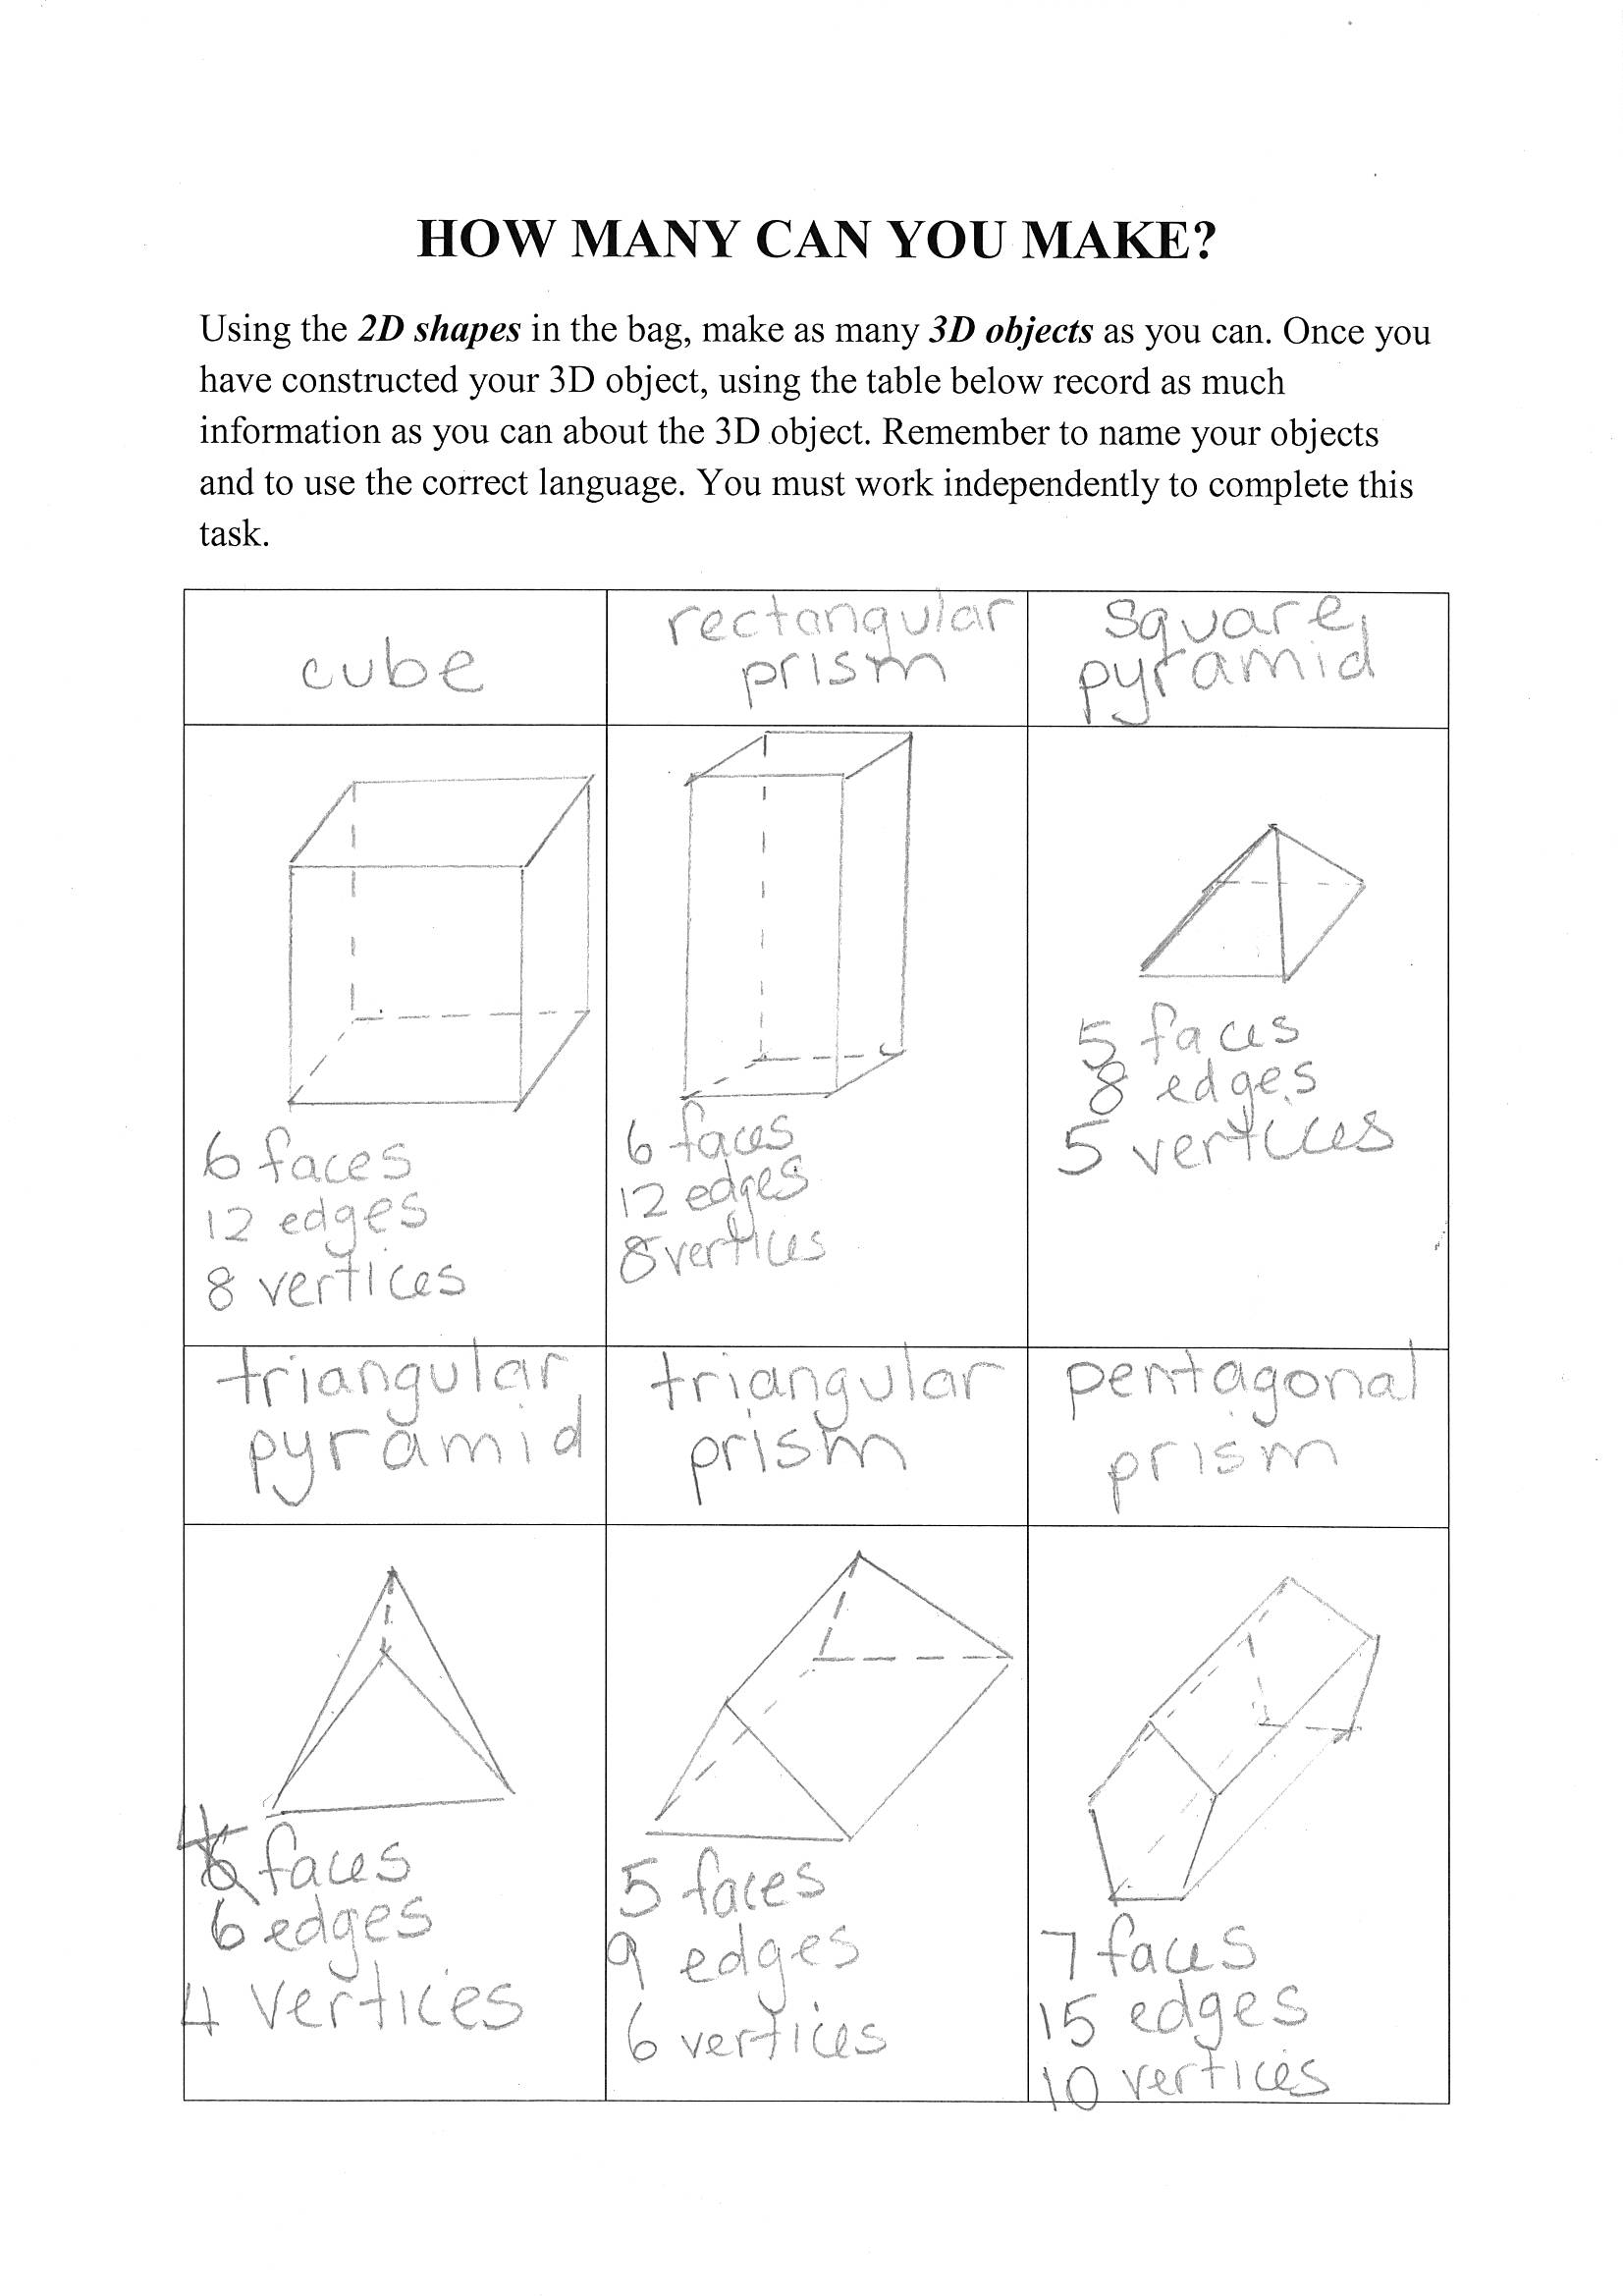 Work sample 4 Measurement: How many can you make? Identifies and draws 3D objects and lists the attributes.